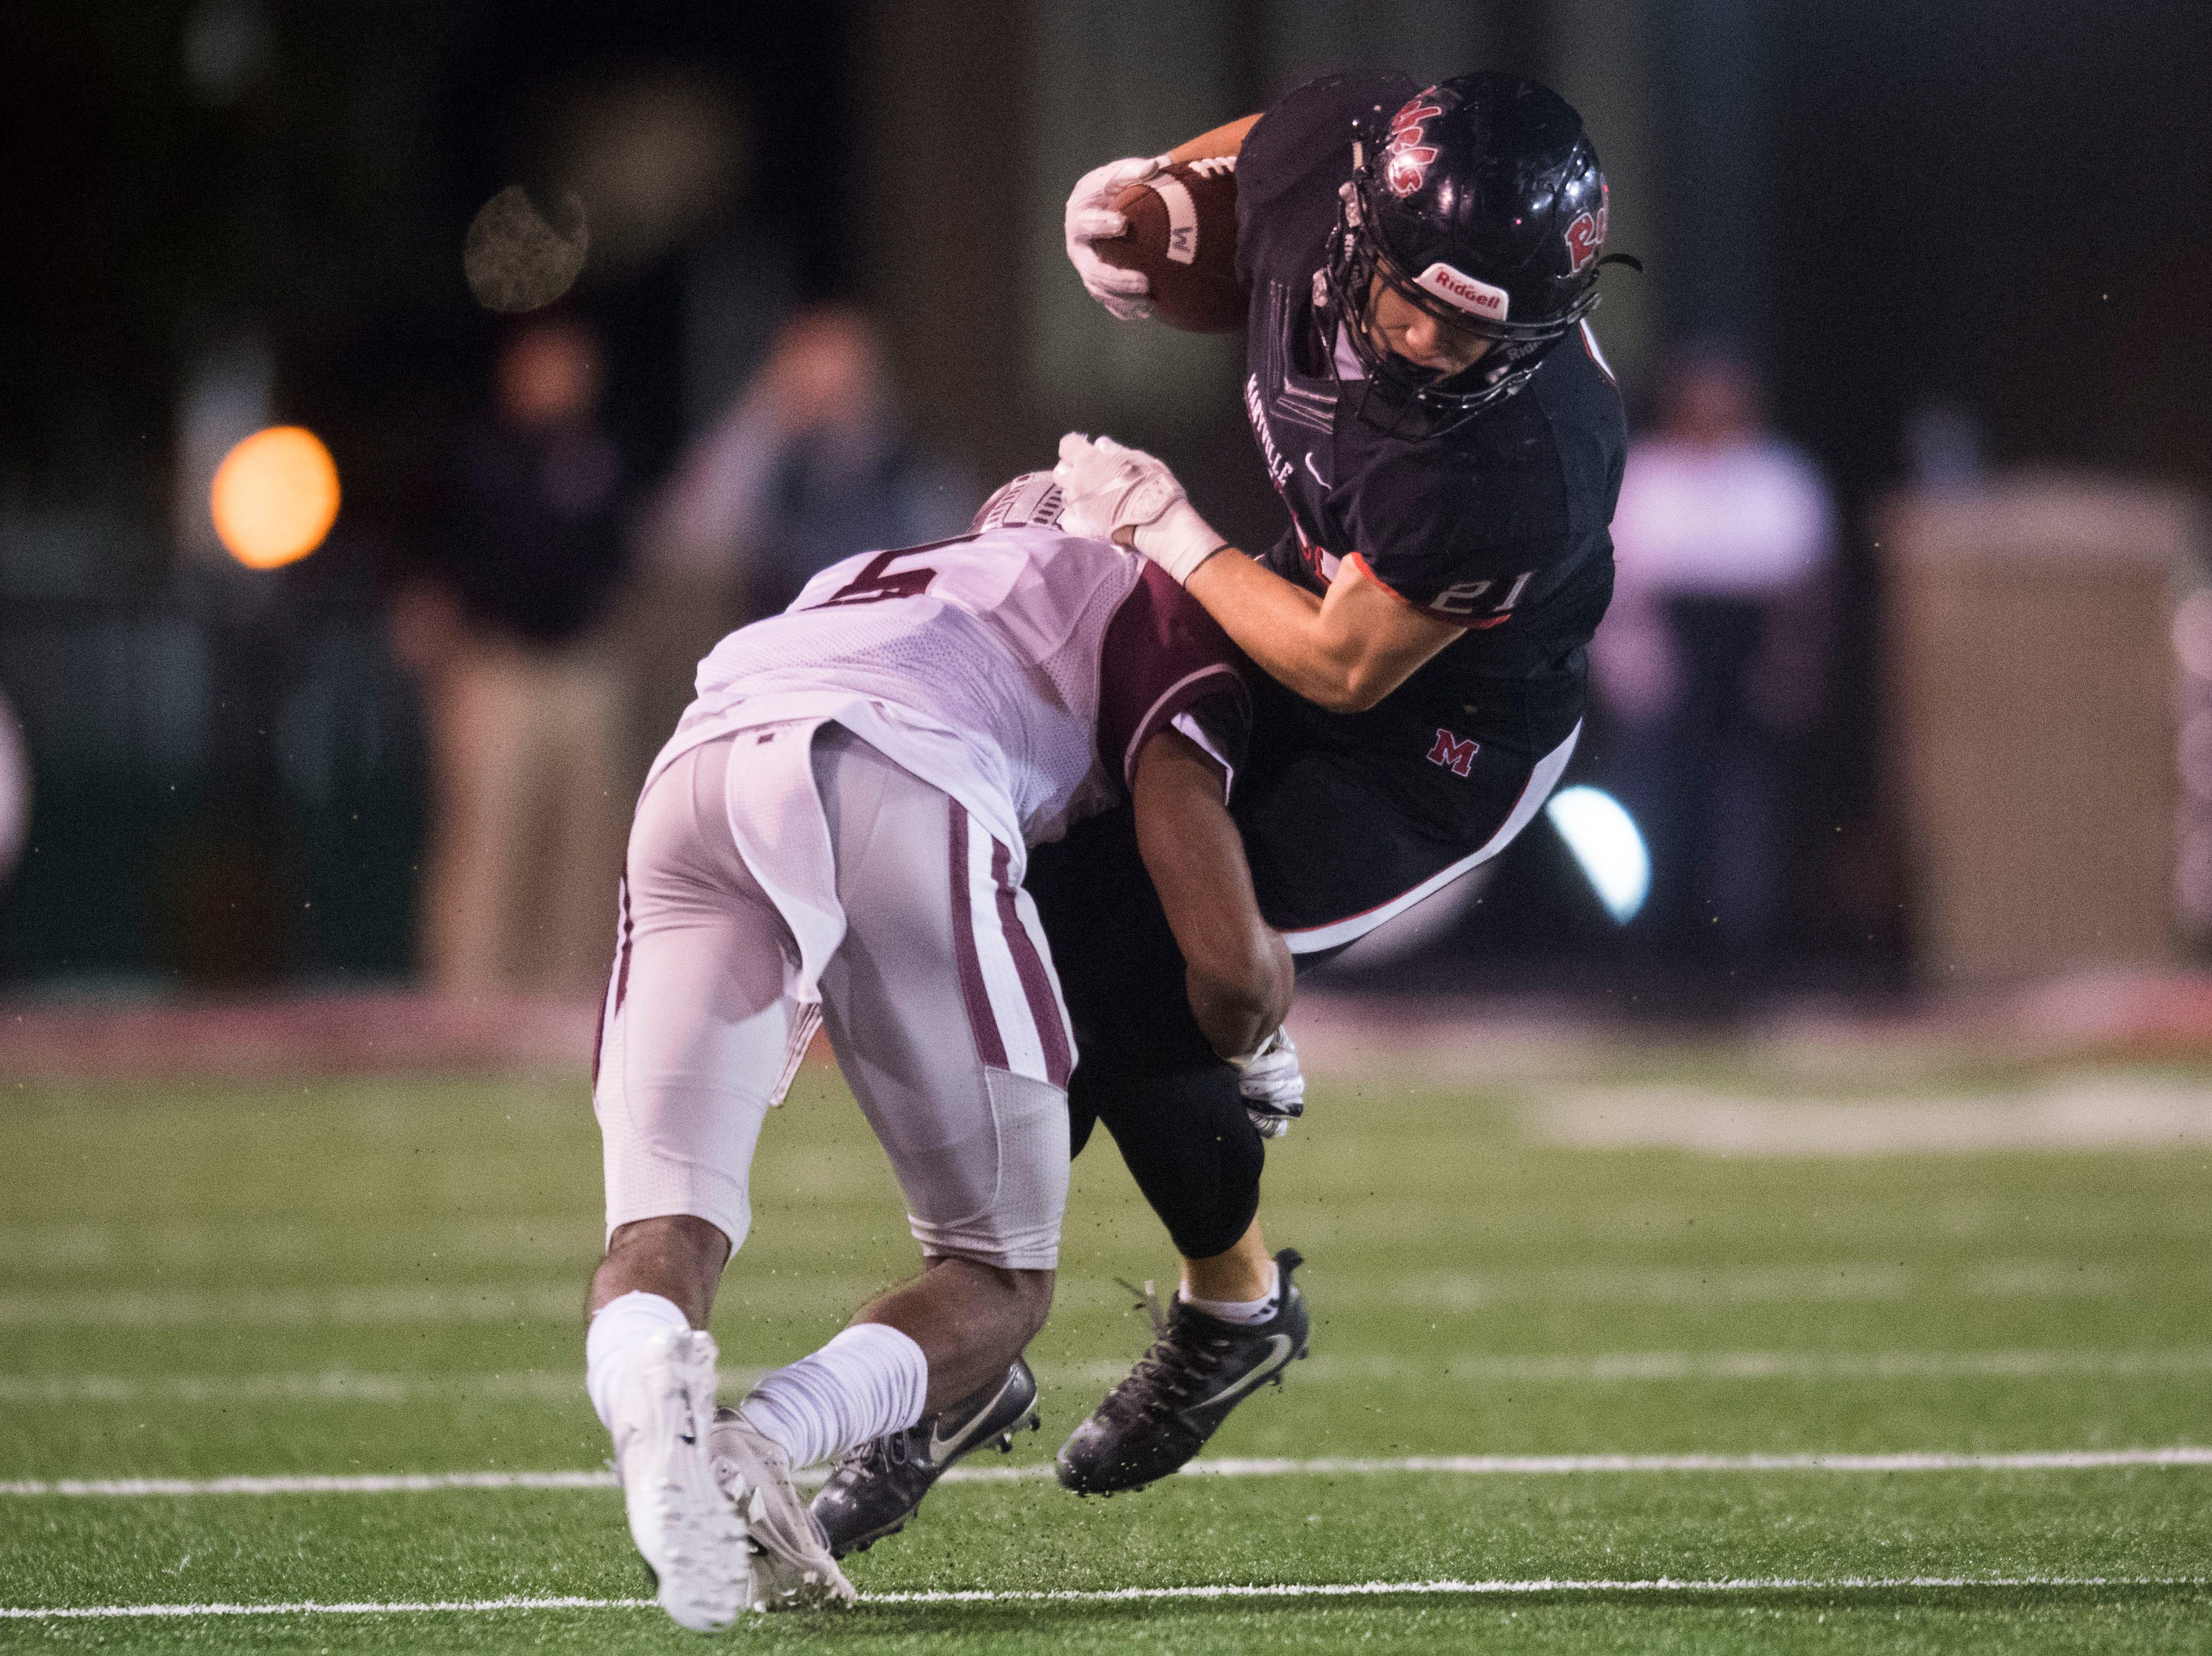 Maryville's Bryson Teffeteller (21) is tackled by Bearden's Kahlil Abdullah (5) during a first round playoff game between Maryville and Bearden at Maryville, Friday, Nov. 2, 2018. Maryville defeated Bearden 28-7.